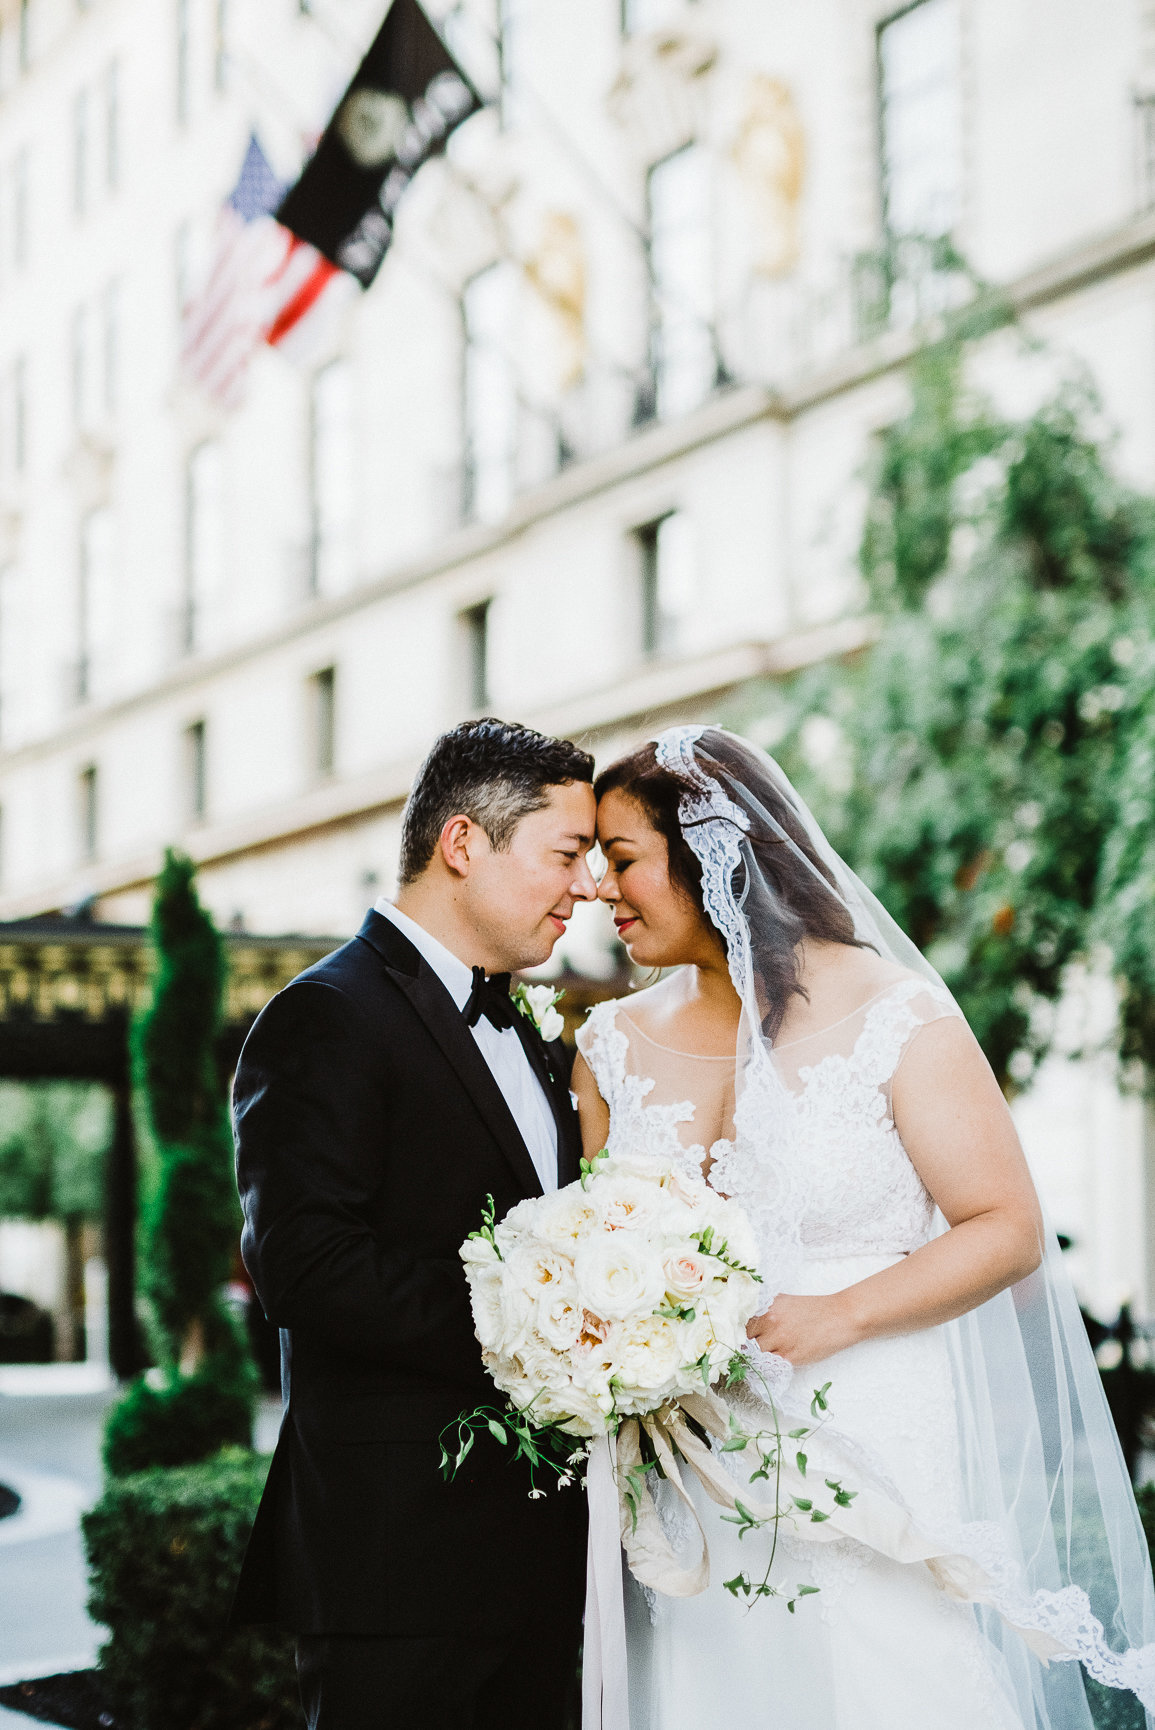 WEDDINGPHOTOGRAPHERMIAMI-159